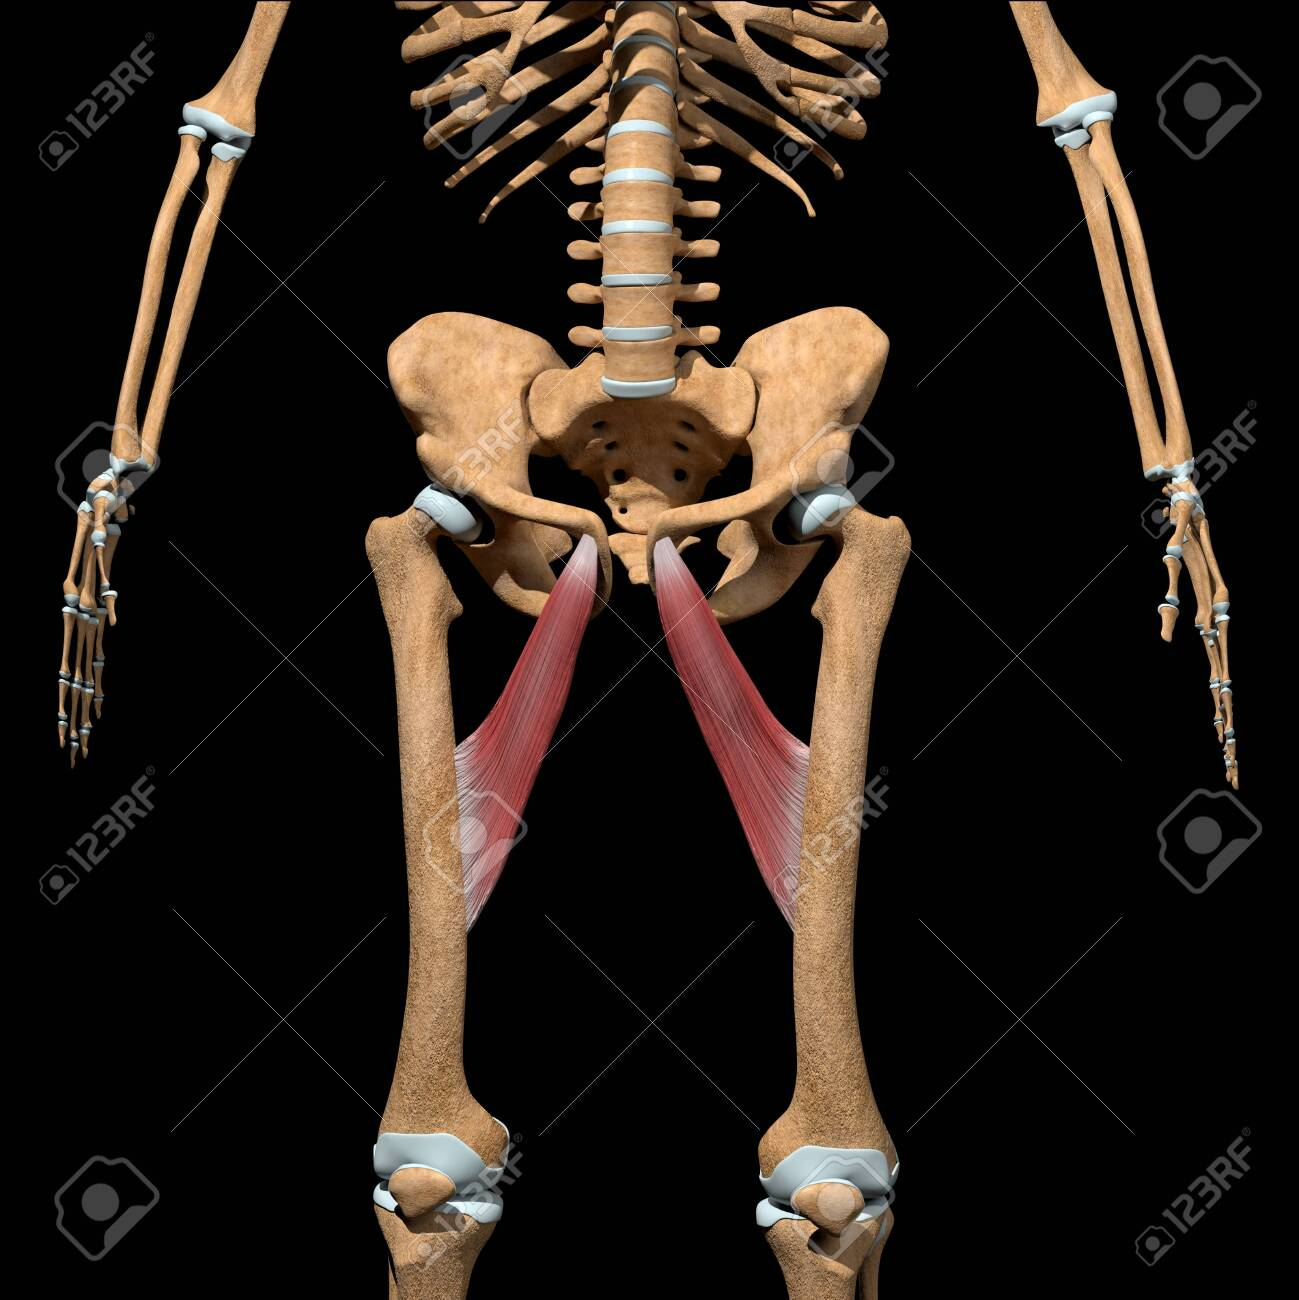 This 3d illustration shows the adductor longus muscles on skeleton - 141625977